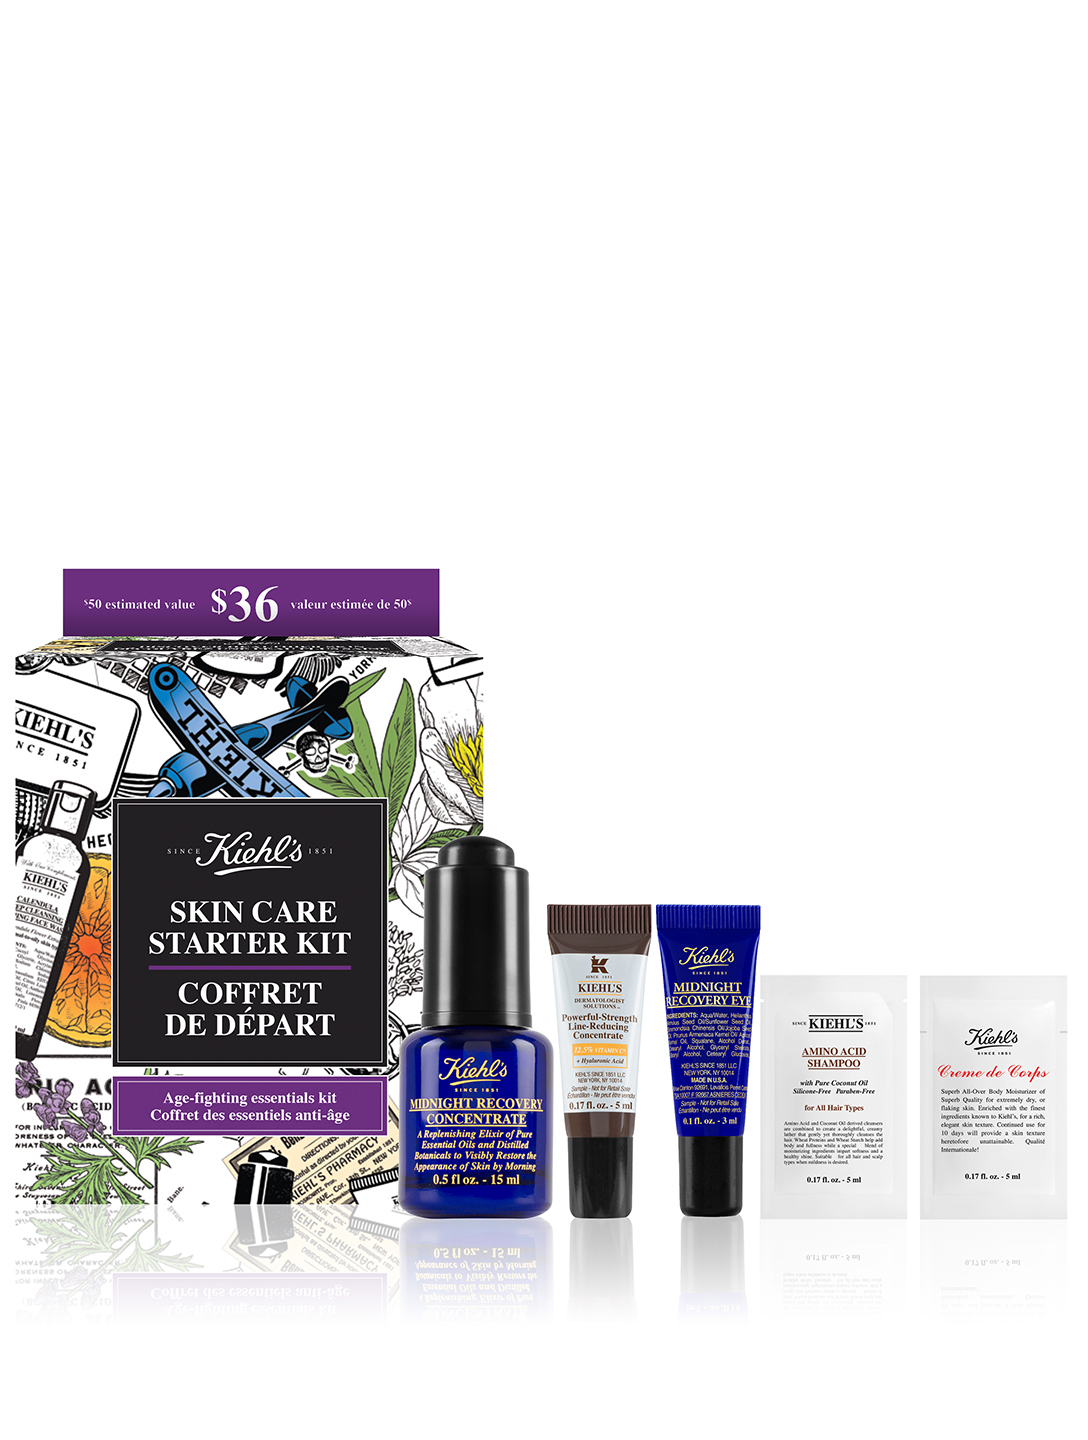 KIEHL'S Skin Care Starter Kit - Age-Fighting Essentials Kit Beauty